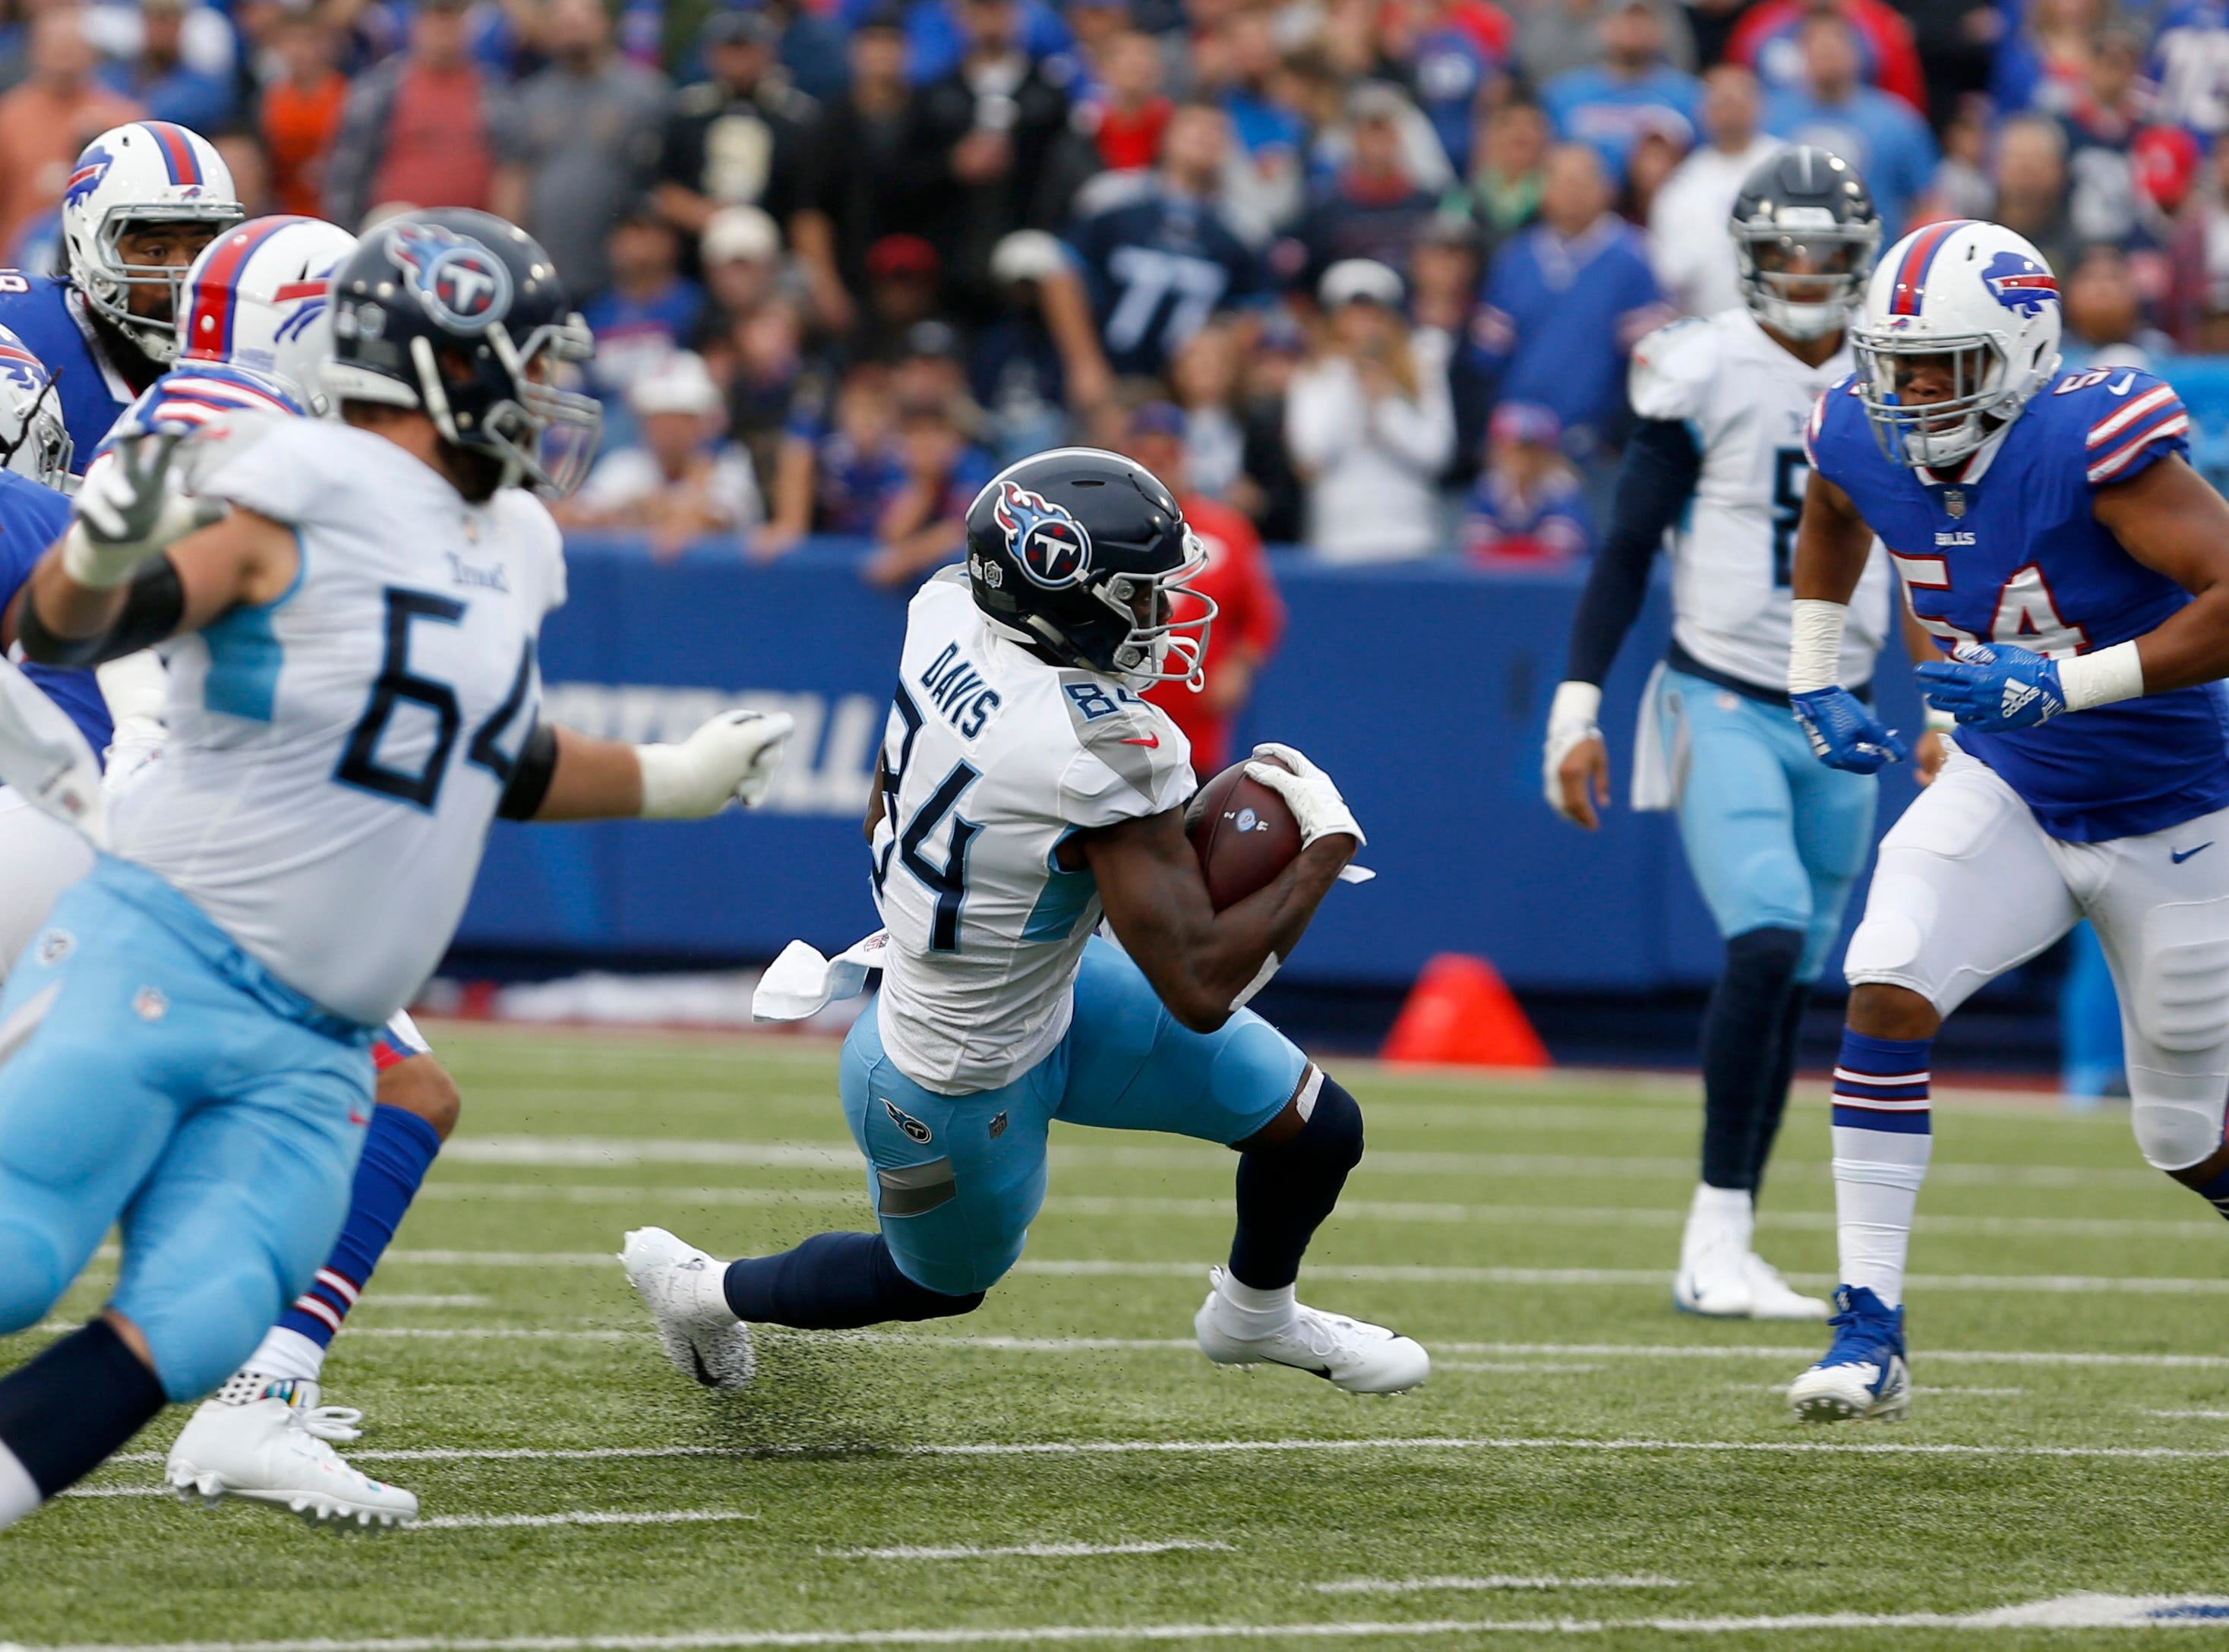 Oct 7, 2018; Orchard Park, NY, USA; Tennessee Titans wide receiver Corey Davis (84) runs the ball after a catch against Buffalo Bills defensive end Eddie Yarbrough (54) during the first half at New Era Field.